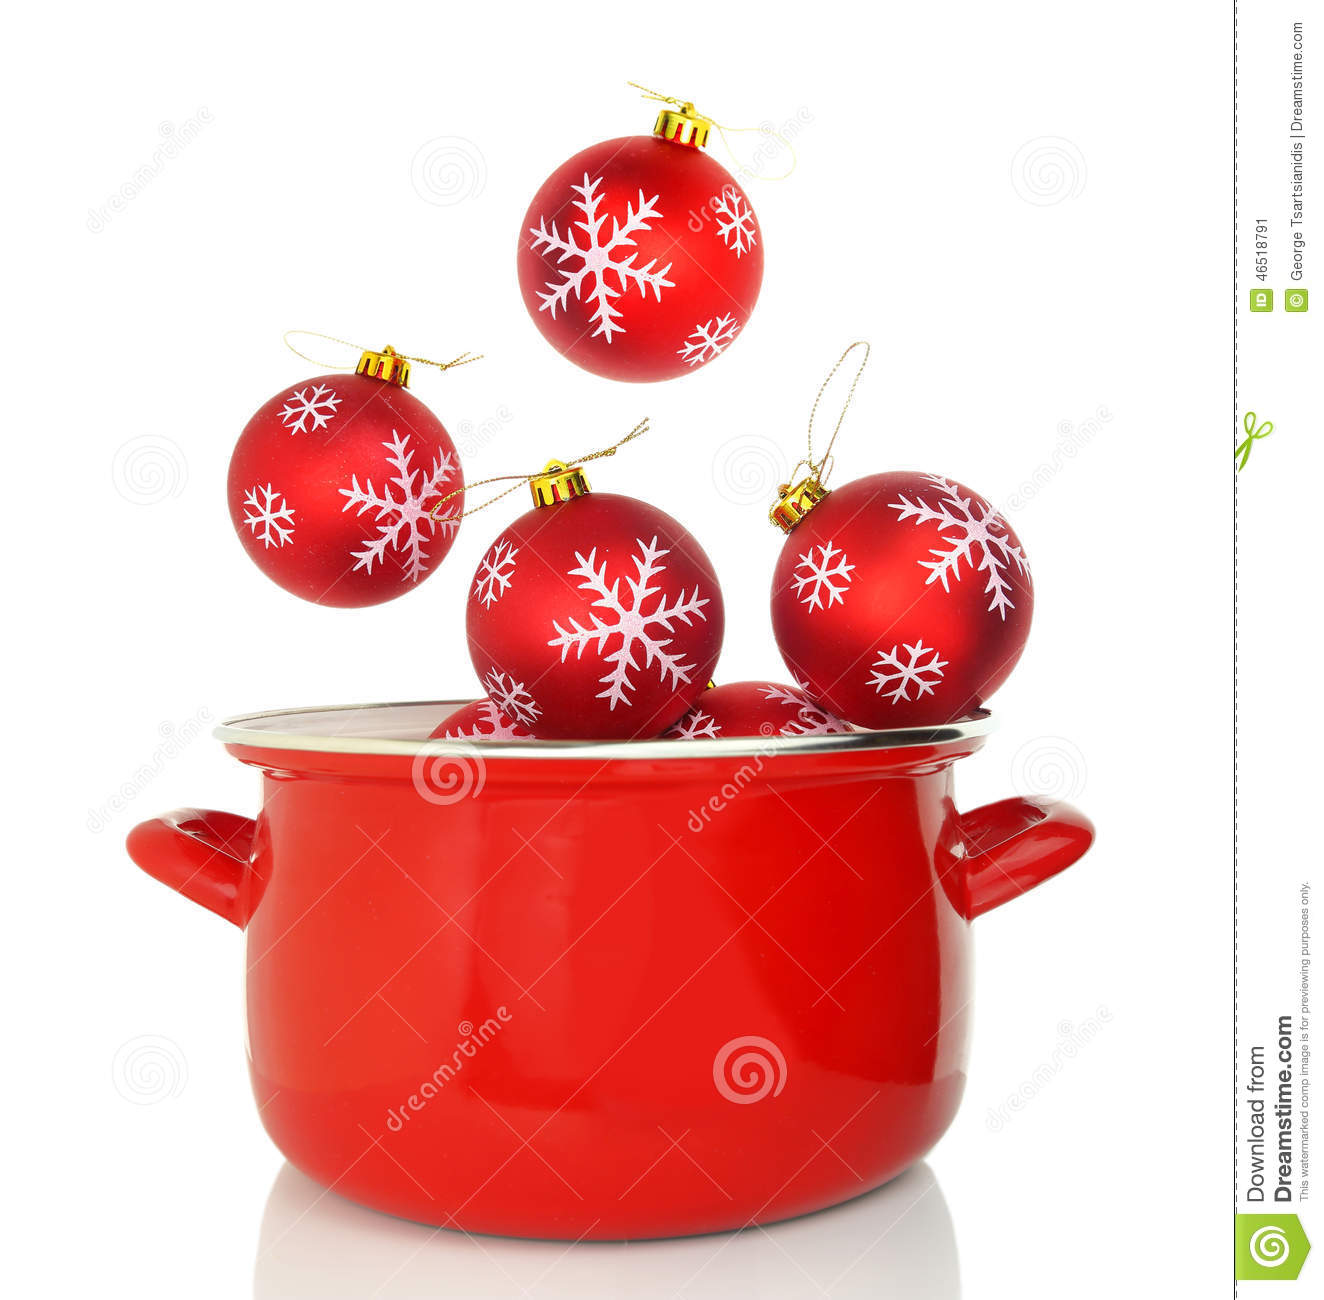 Cooking Pot With Christmas Ornaments Stock Image - Image ...